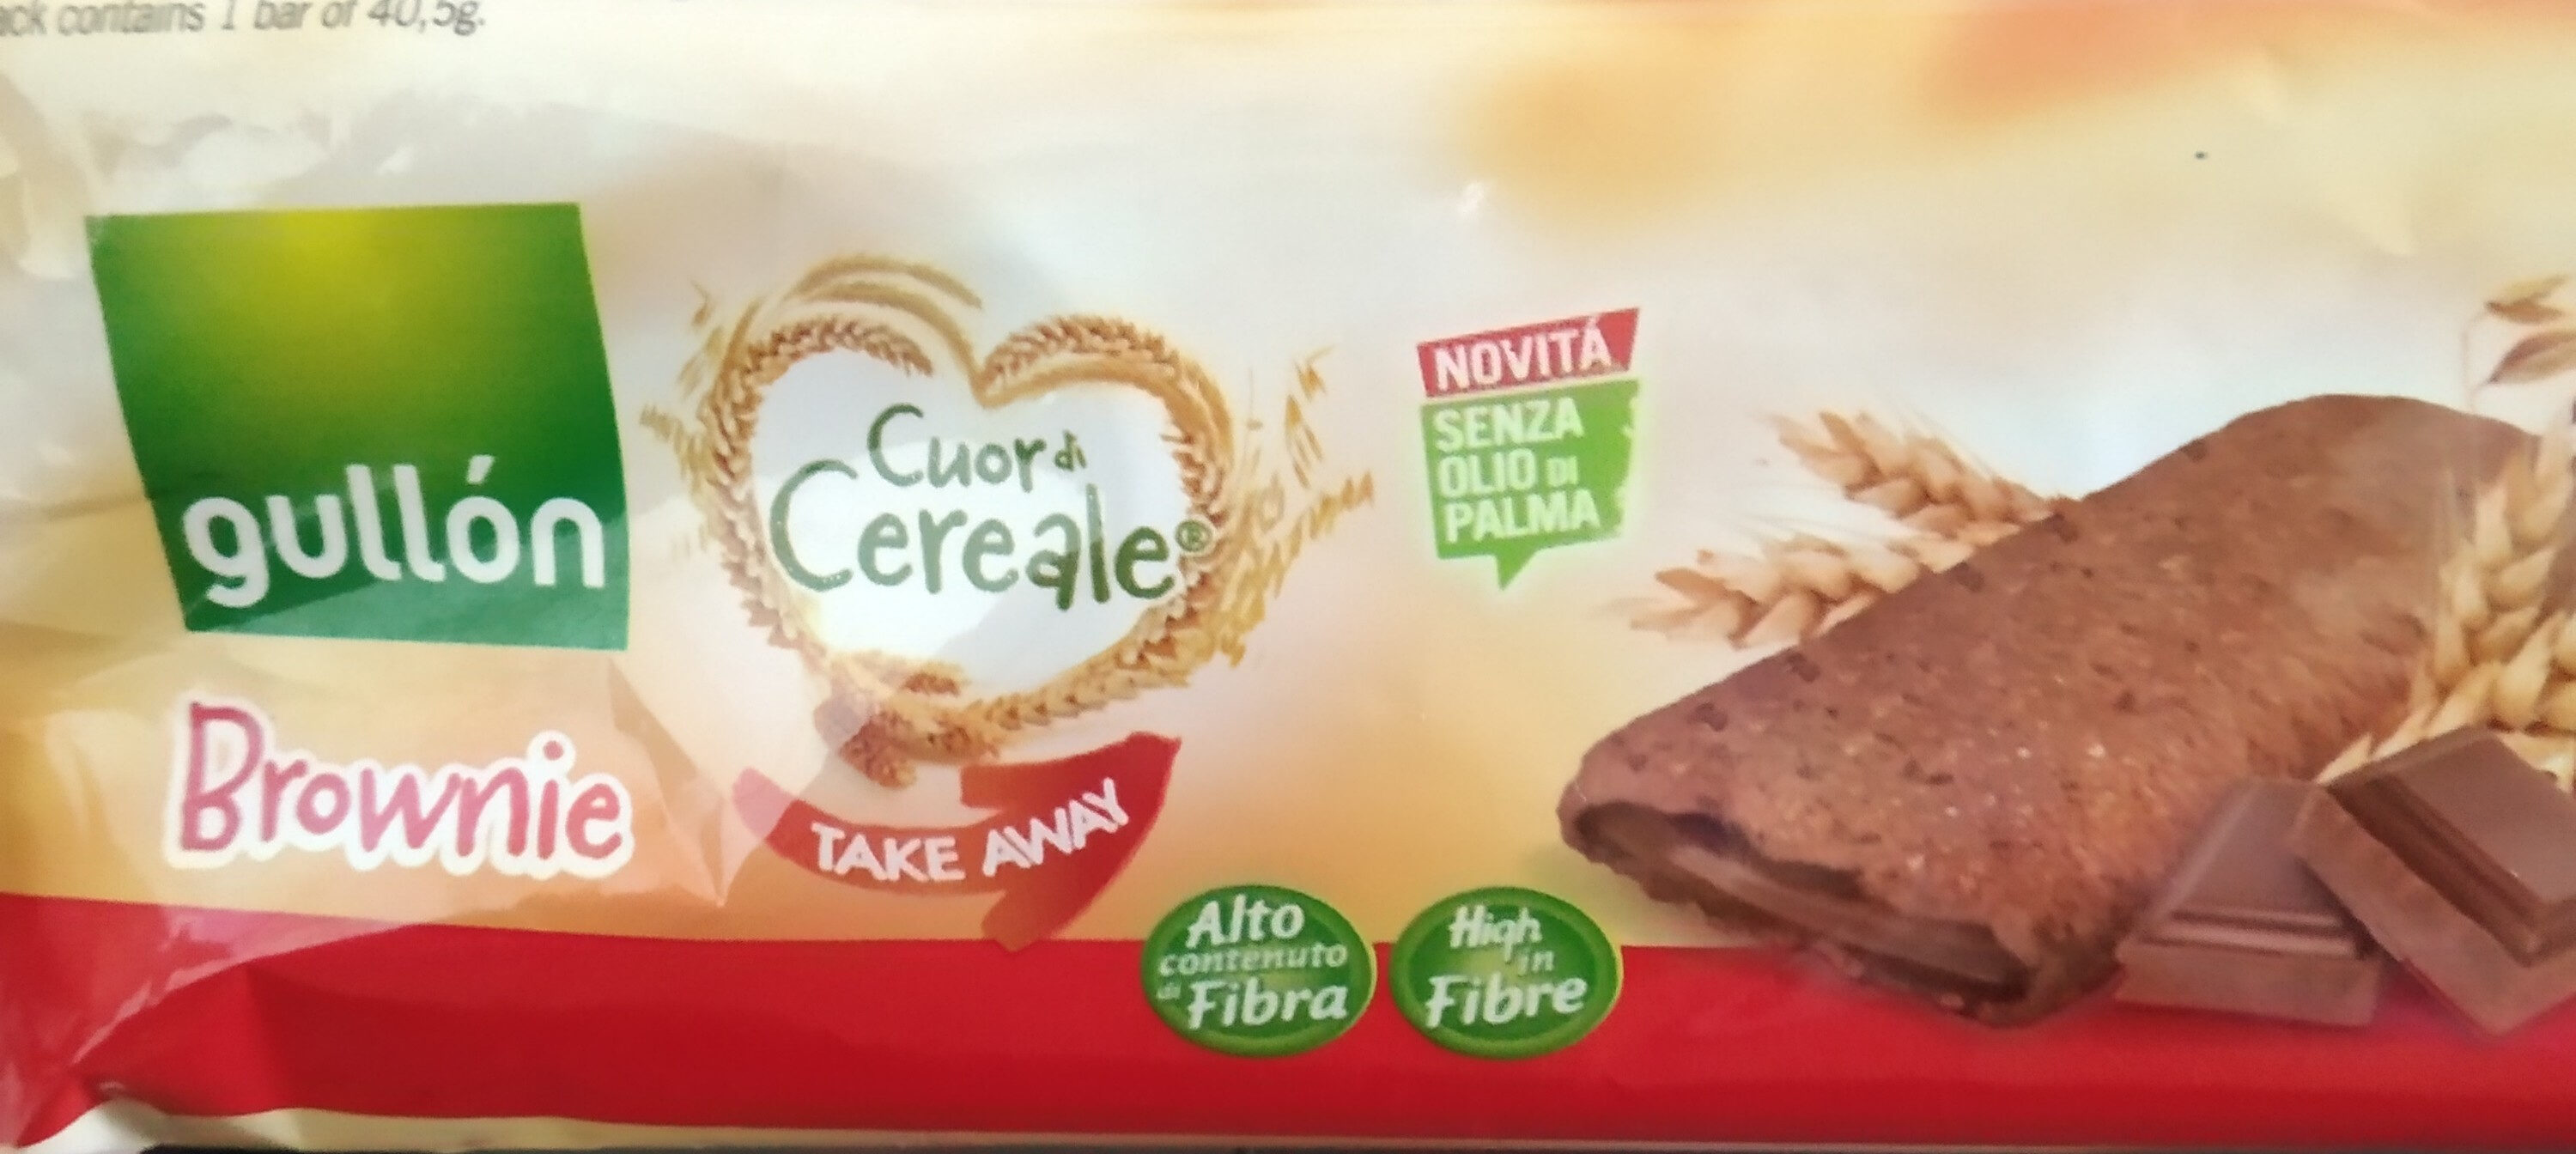 cuor di cereale brownie - Product